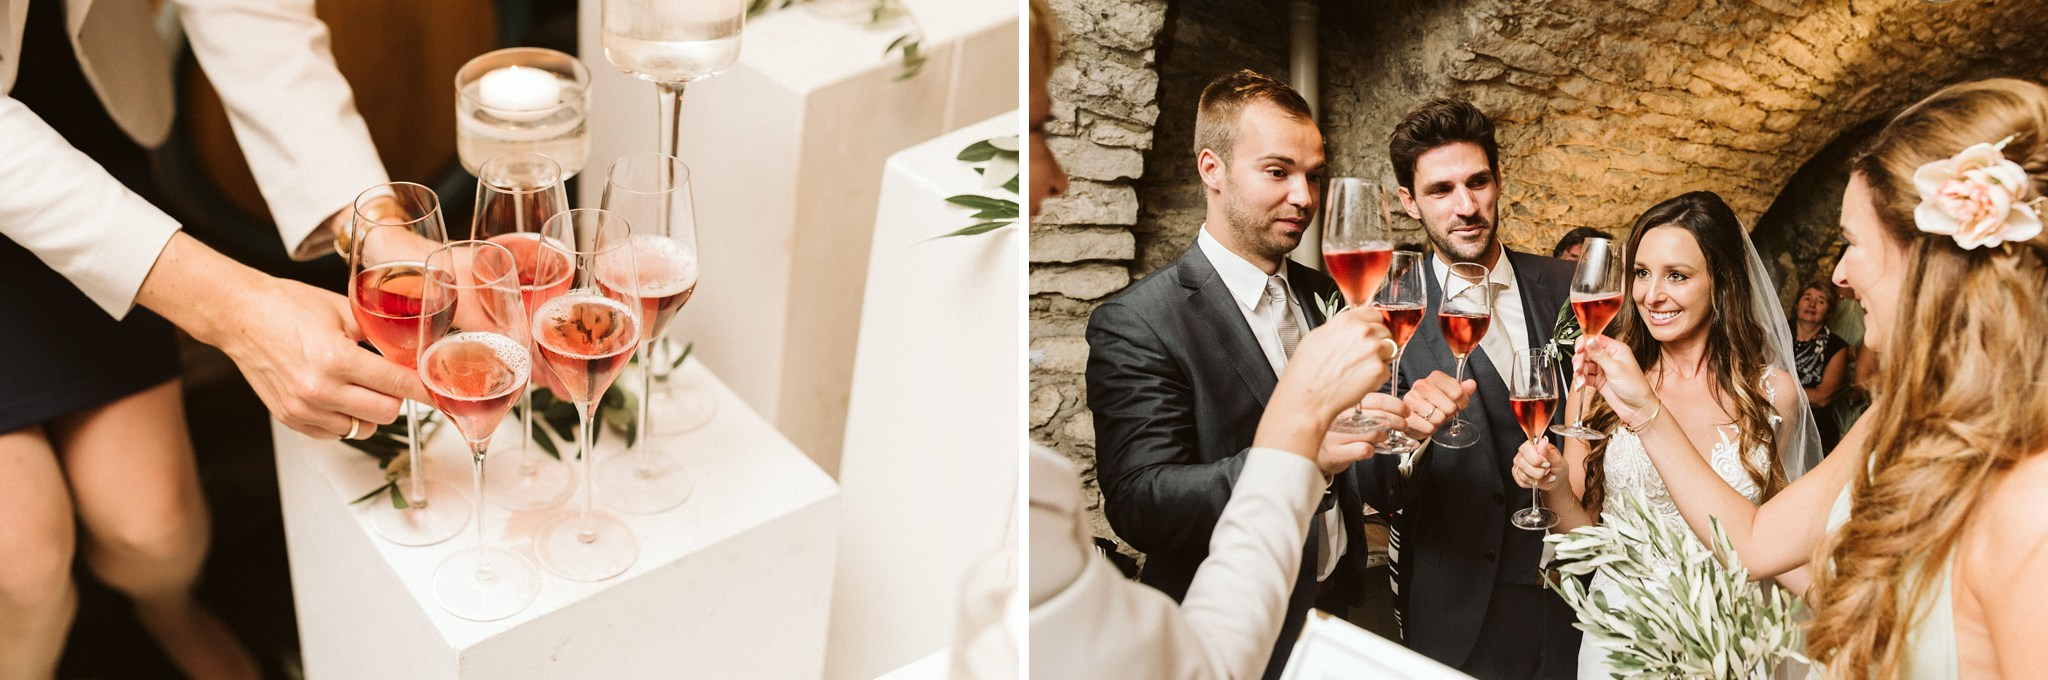 A South Styria Wedding Photographer